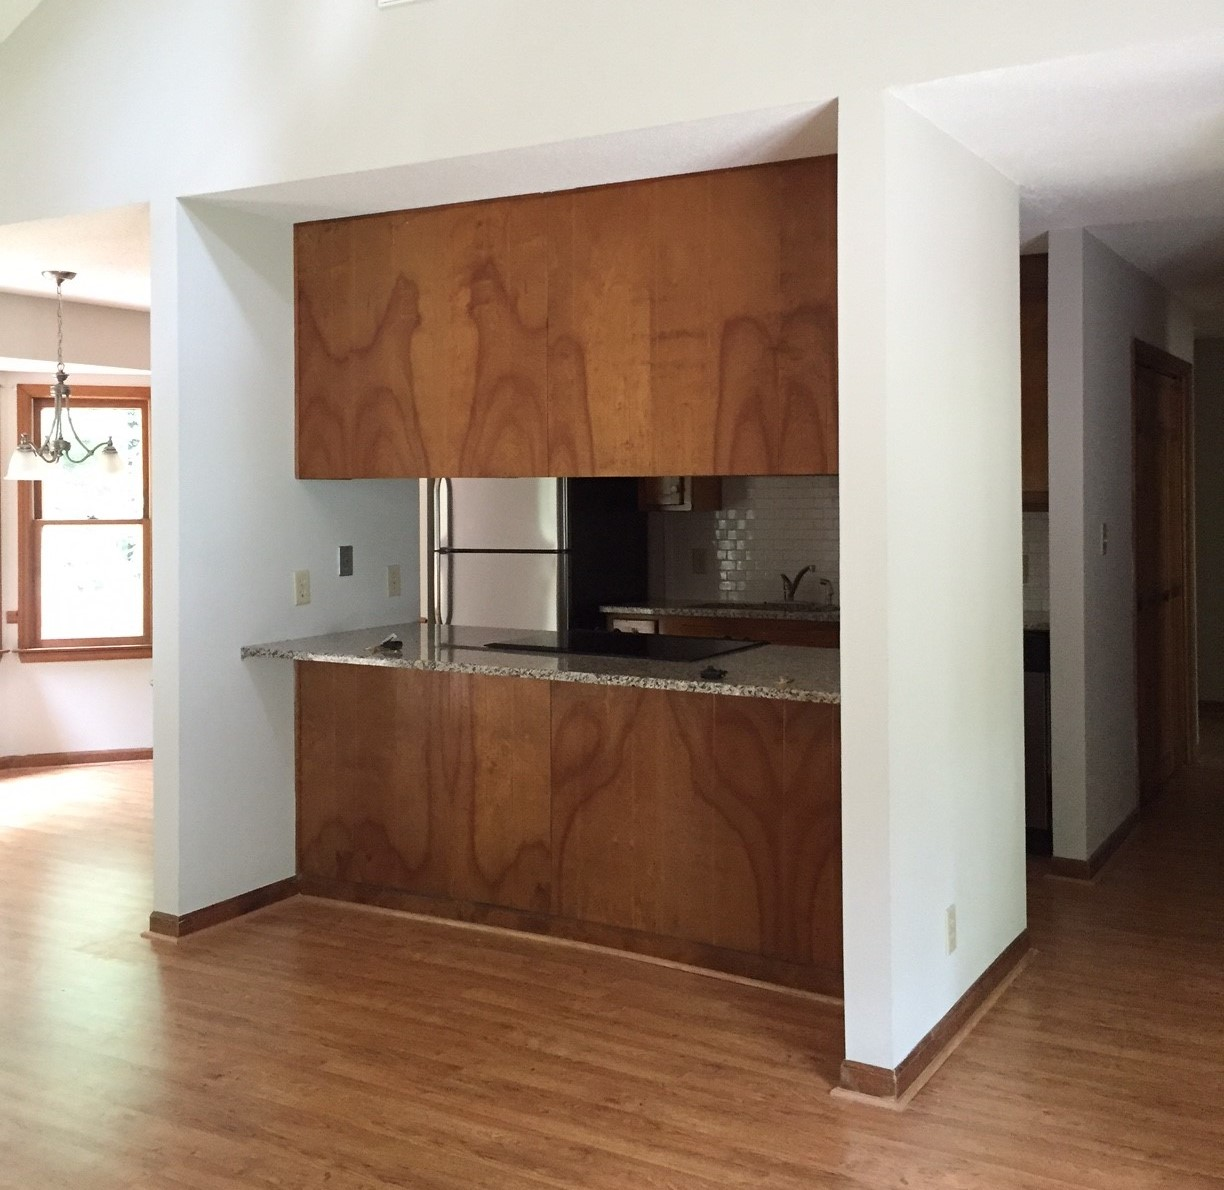 ... IKEA Walnut VOXTORP Doors. Marie Chose To Open Up Her Kitchen With A  Very Different Design Decision. Can You Guess? This Is What Her Kitchen  Looked Like ...